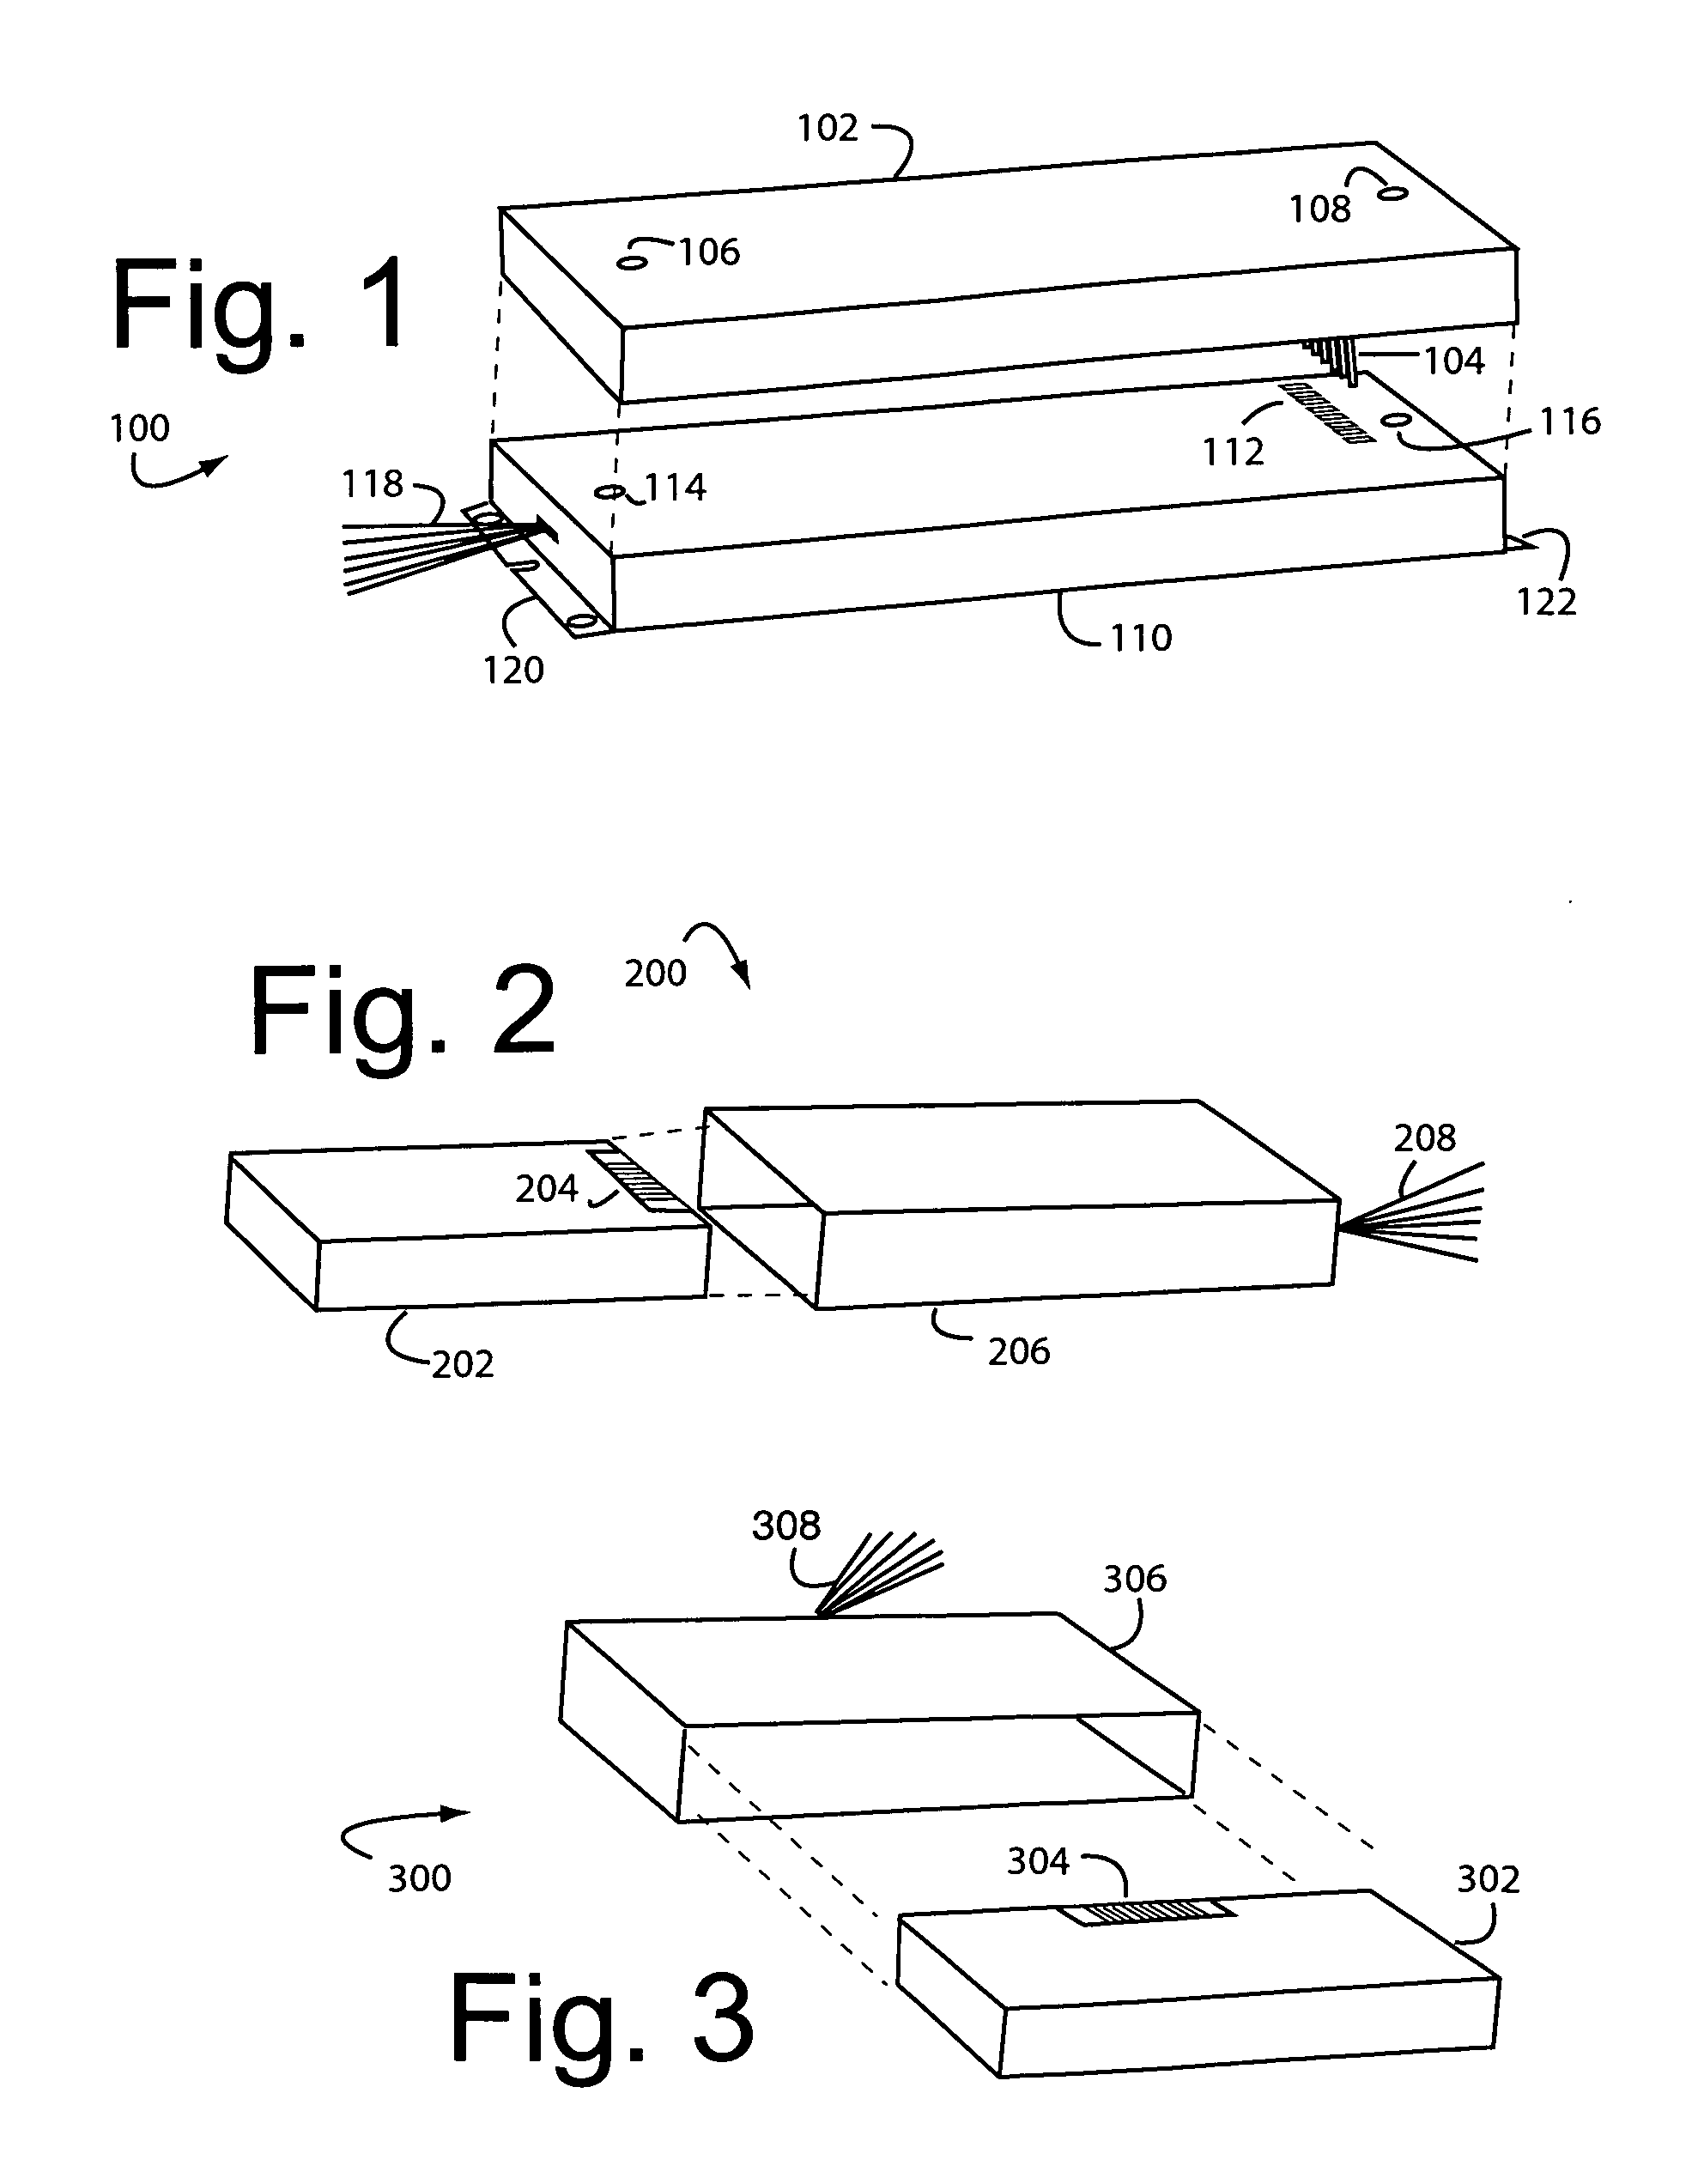 Energy savings ballast cross reference - Patent Drawing